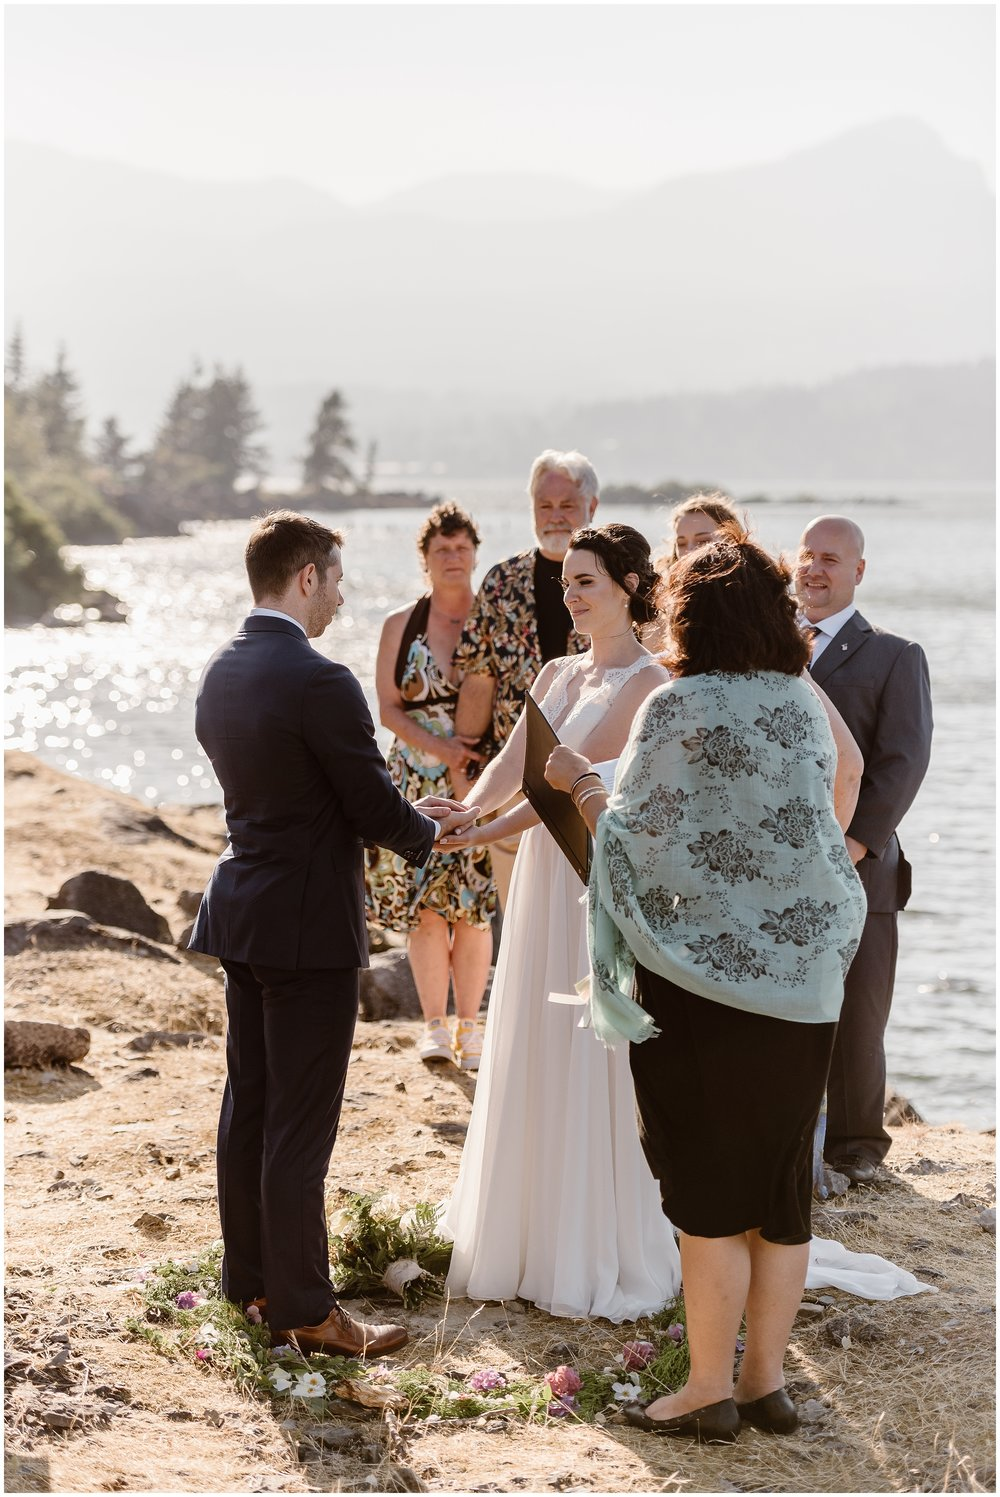 The bride and groom, Lauryn and David, stand in the middle of a floral circle on the ground on the side of the rushing Columbia River. Their elopement ceremony took place in the Columbia River Gorge surrounded by family and filled with their own unique eloping ideas.